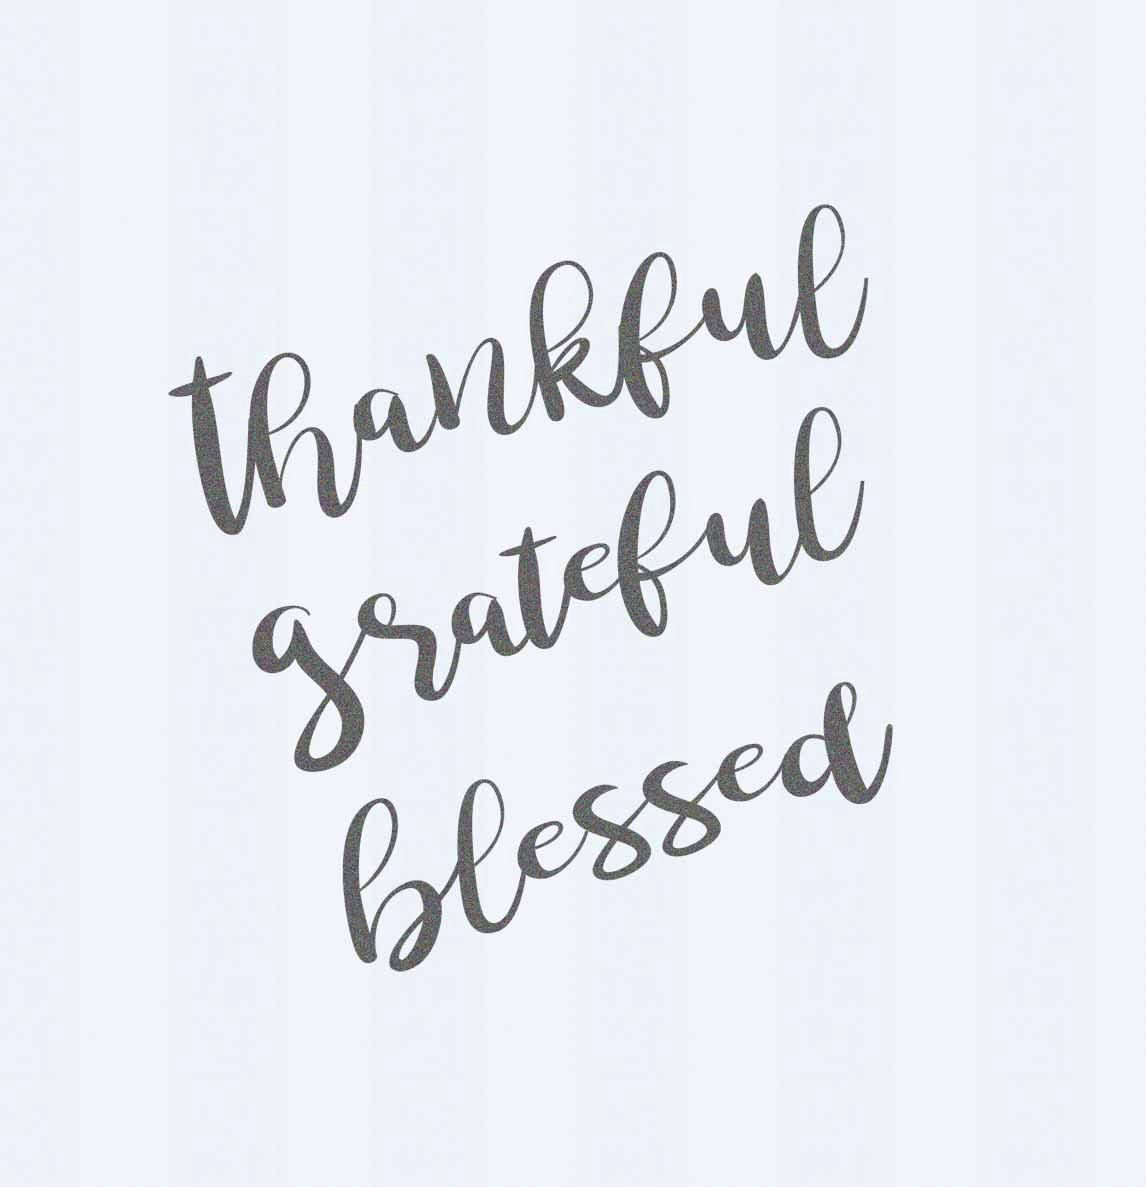 Thankful Grateful Blessed Svg Eps Dxf Png Thankfully Cricut Files Printable Png Happy Thanksgiving Fall Autumn G Grateful Thankful Blessed Thankful Blessed